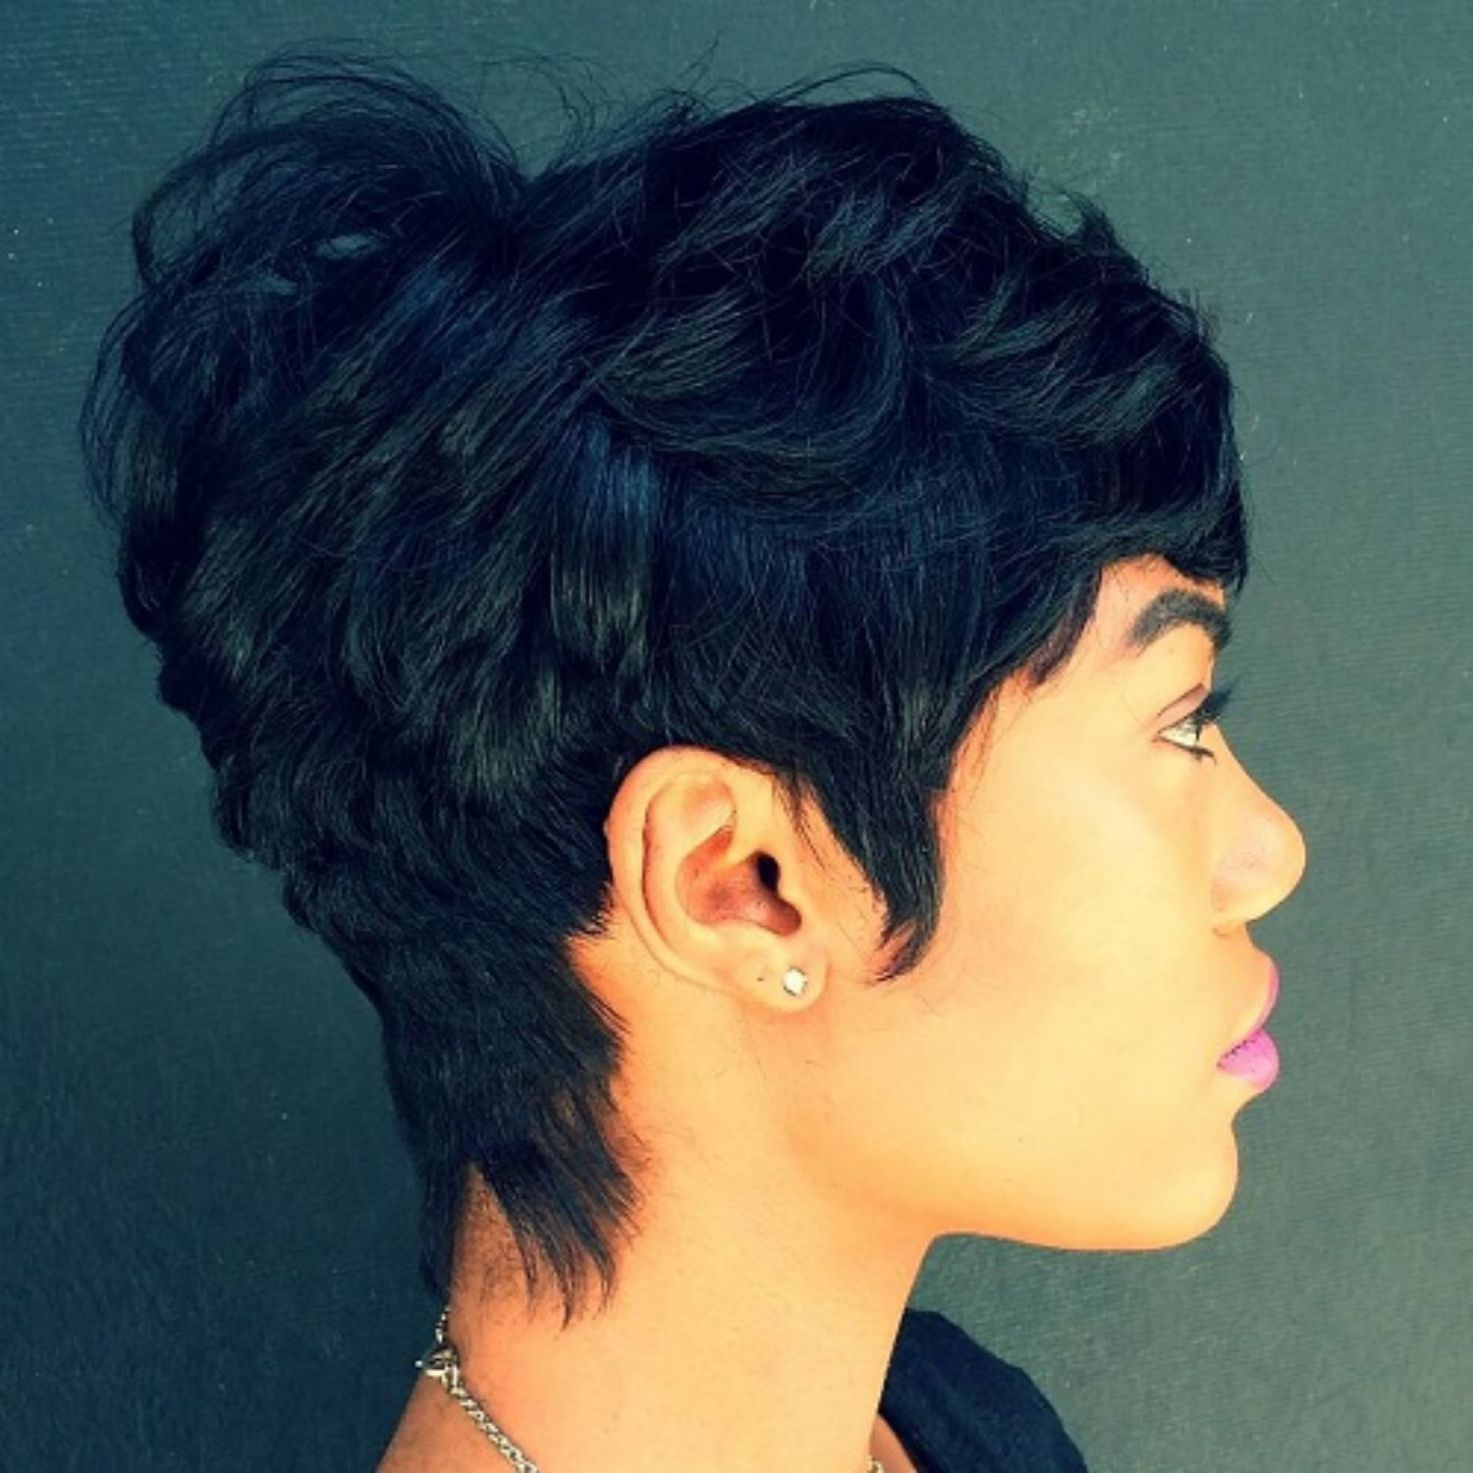 60 Great Short Hairstyles For Black Women Thick Hair Pixie Hair